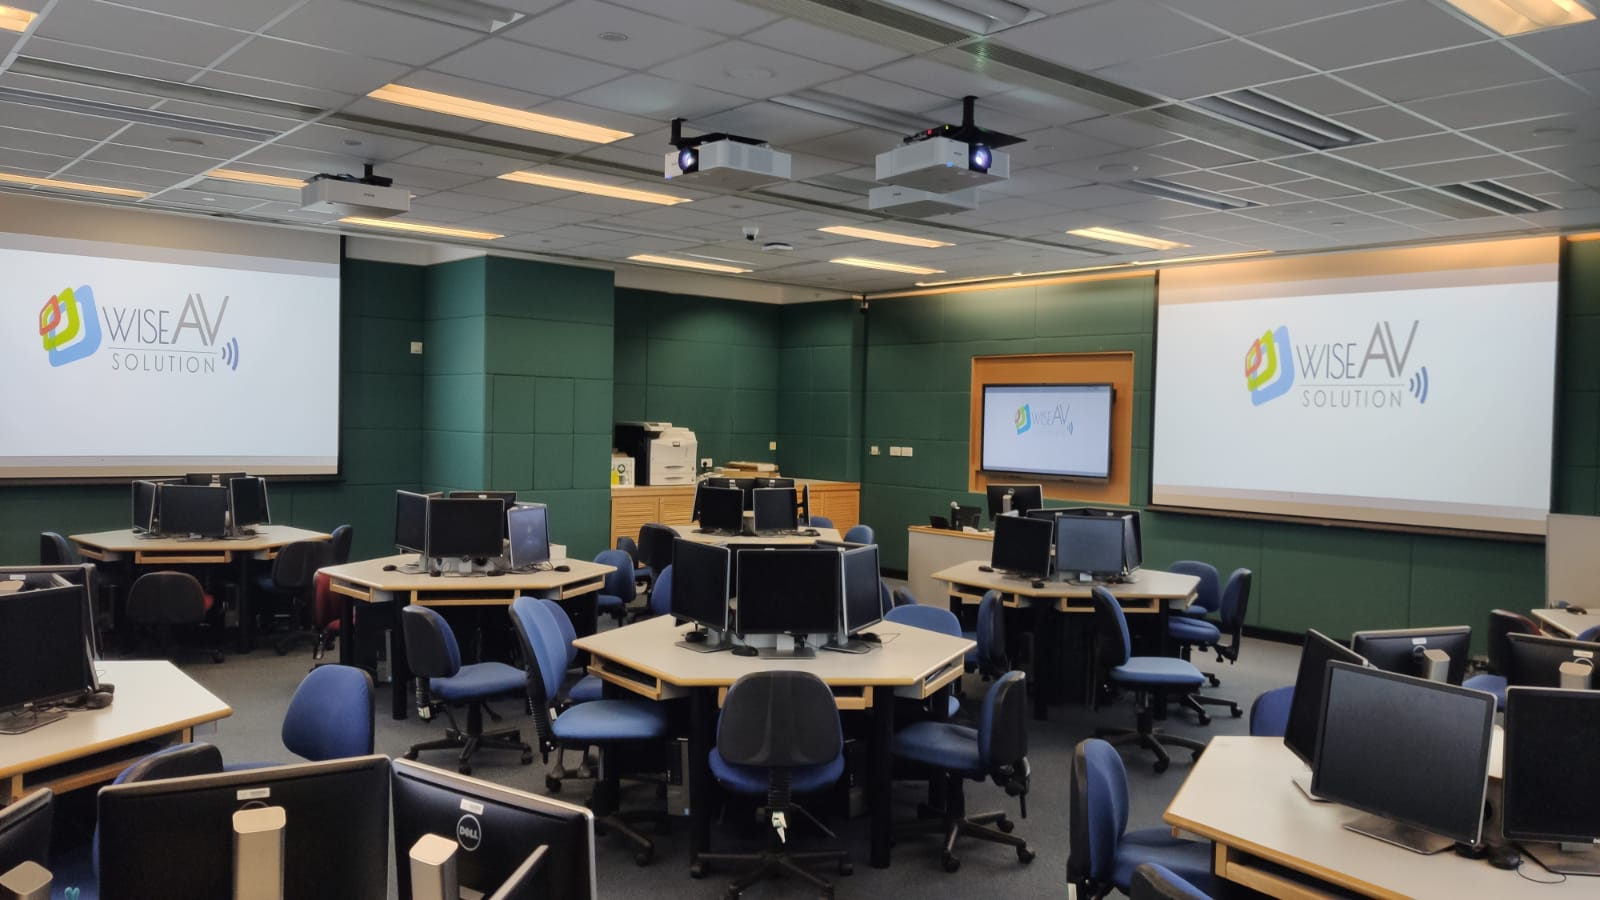 Multi-Media Learning Room for 50 People - WhatsApp Image 2021 03 25 at 17.54.25